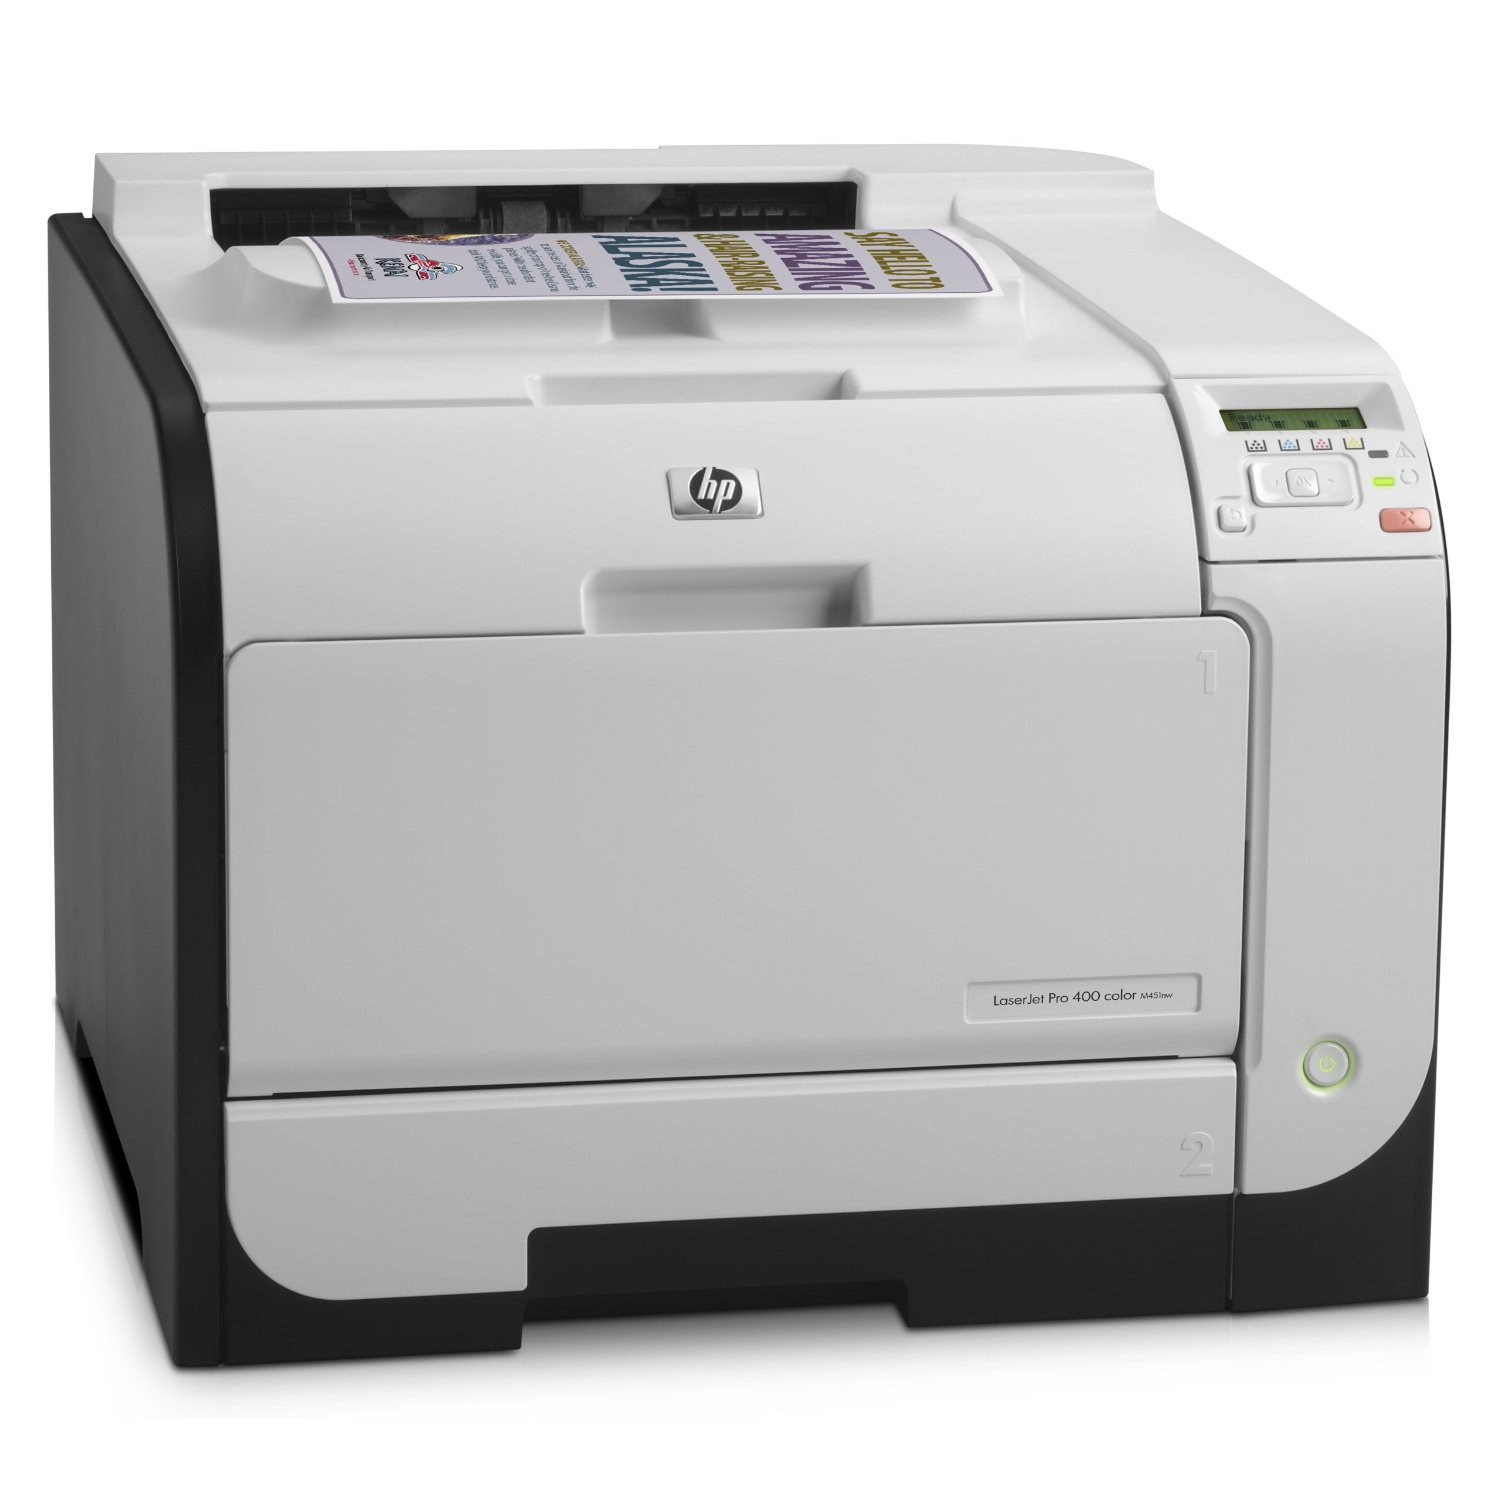 Принтер HP LaserJet Pro 400 color Printer M451nw